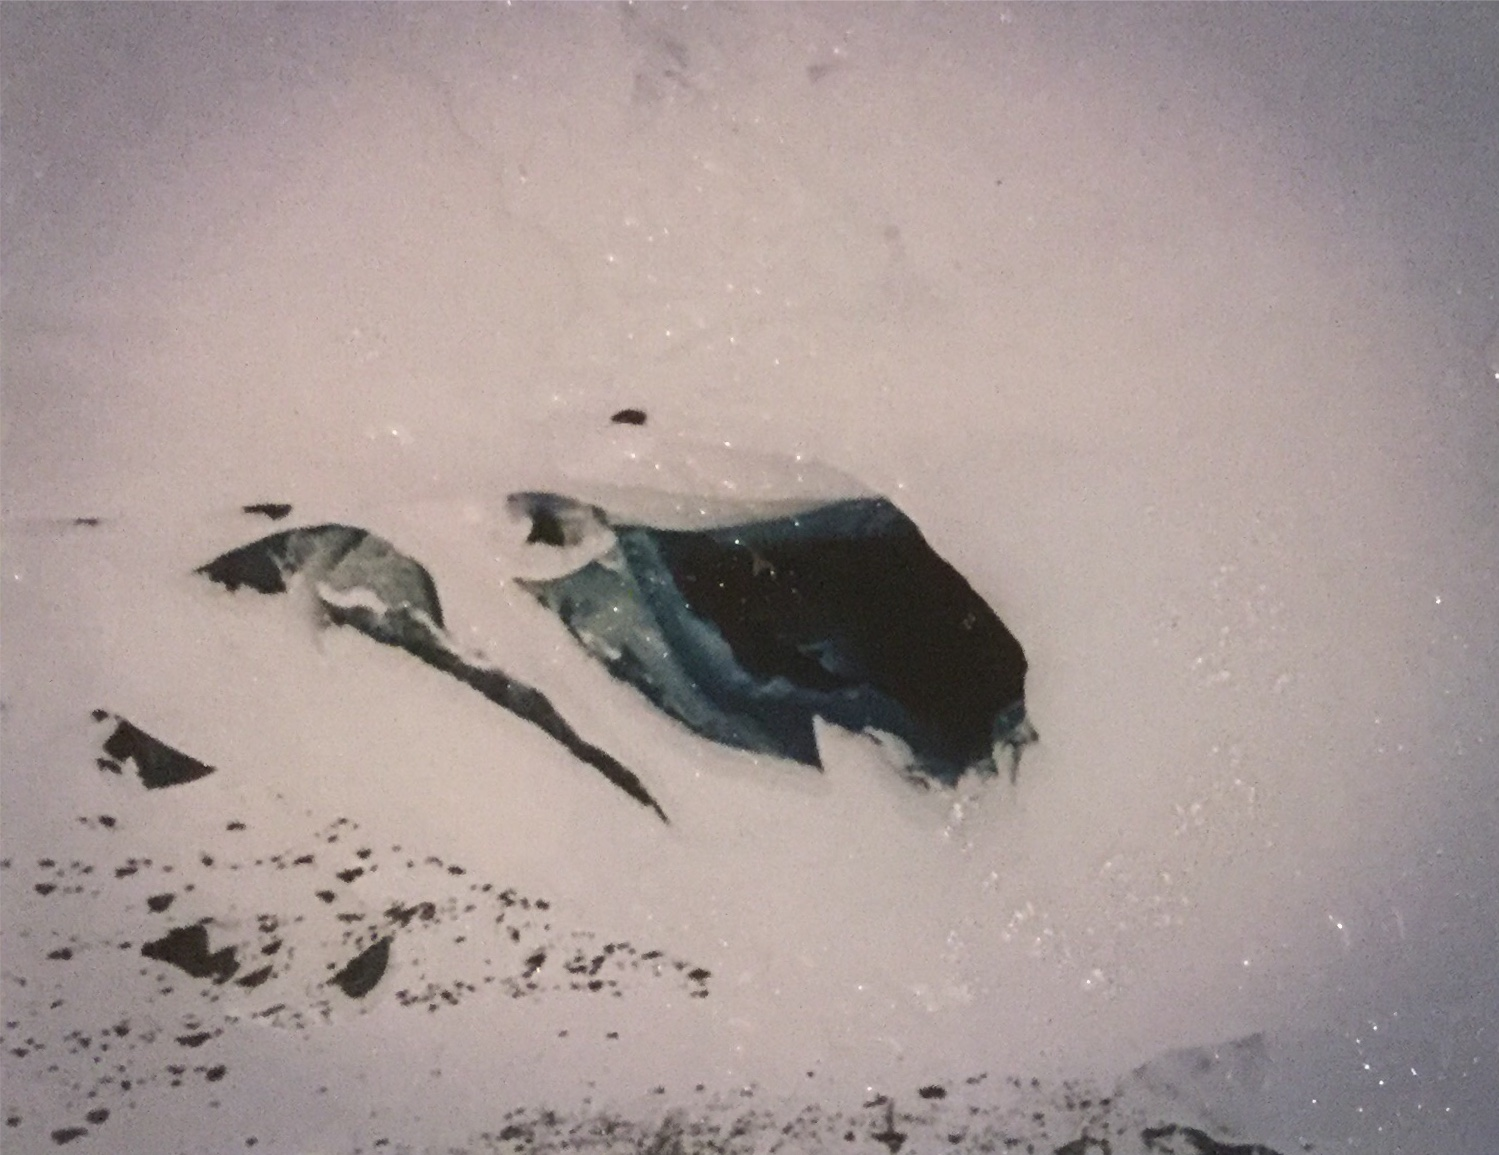 Our hole in the ice.